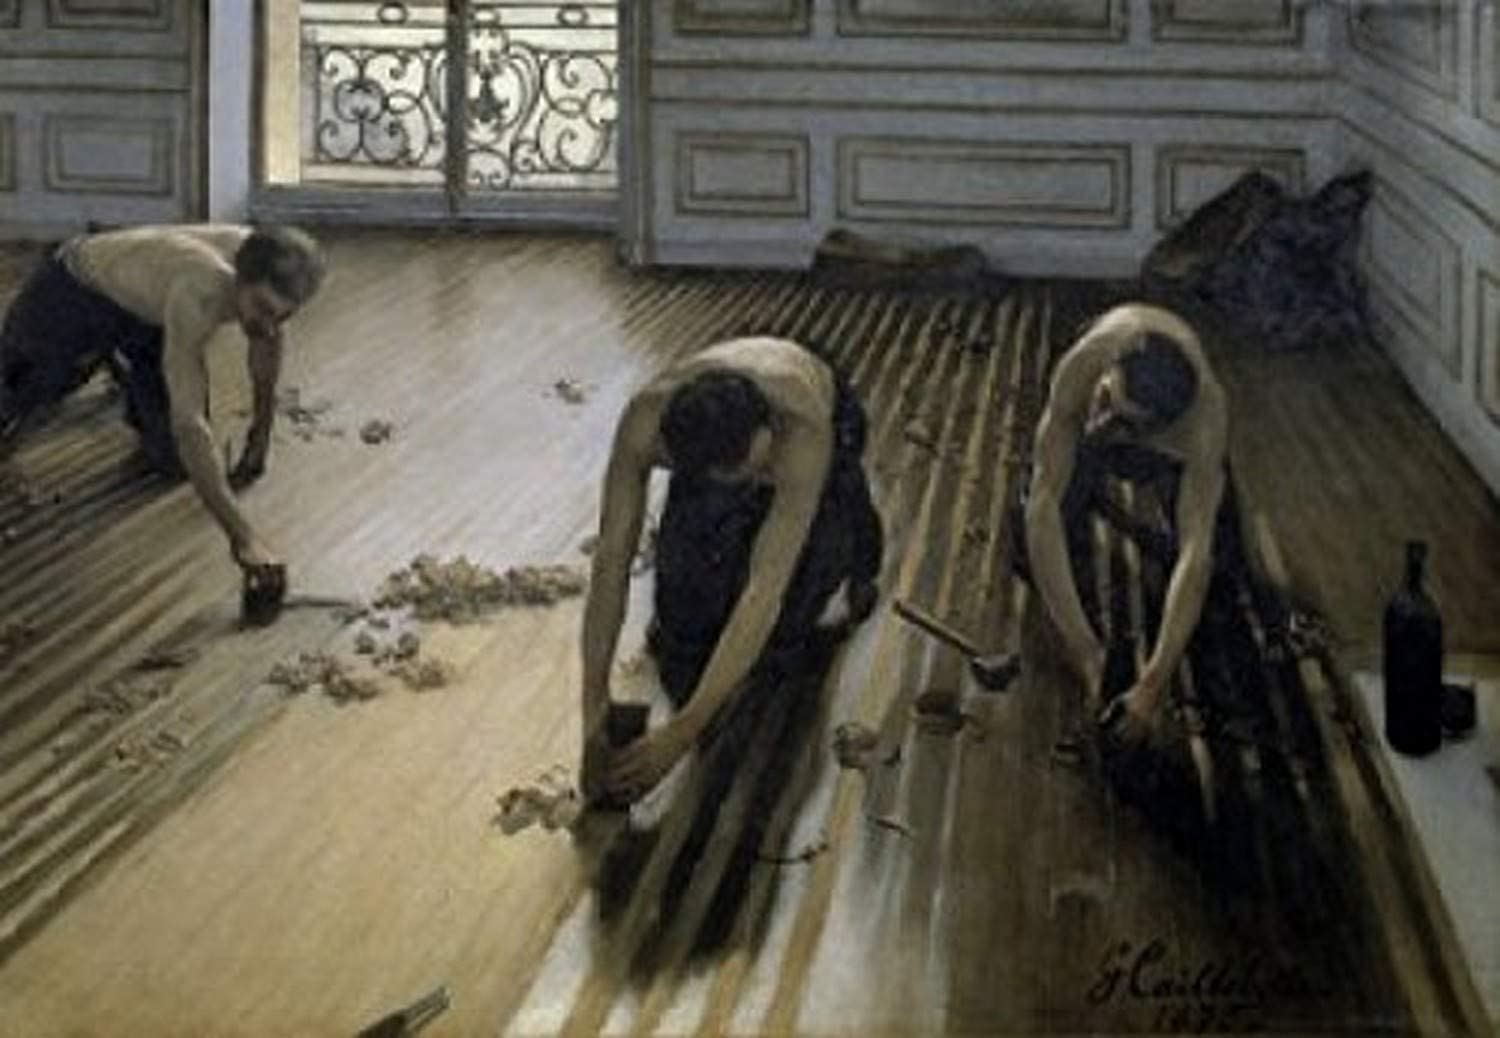 Posterazzi The Floor-Scrapers 1875 Gustave Caillebotte Oil on canvas Musee d'Orsay Paris Poster Print, (8 x 10)